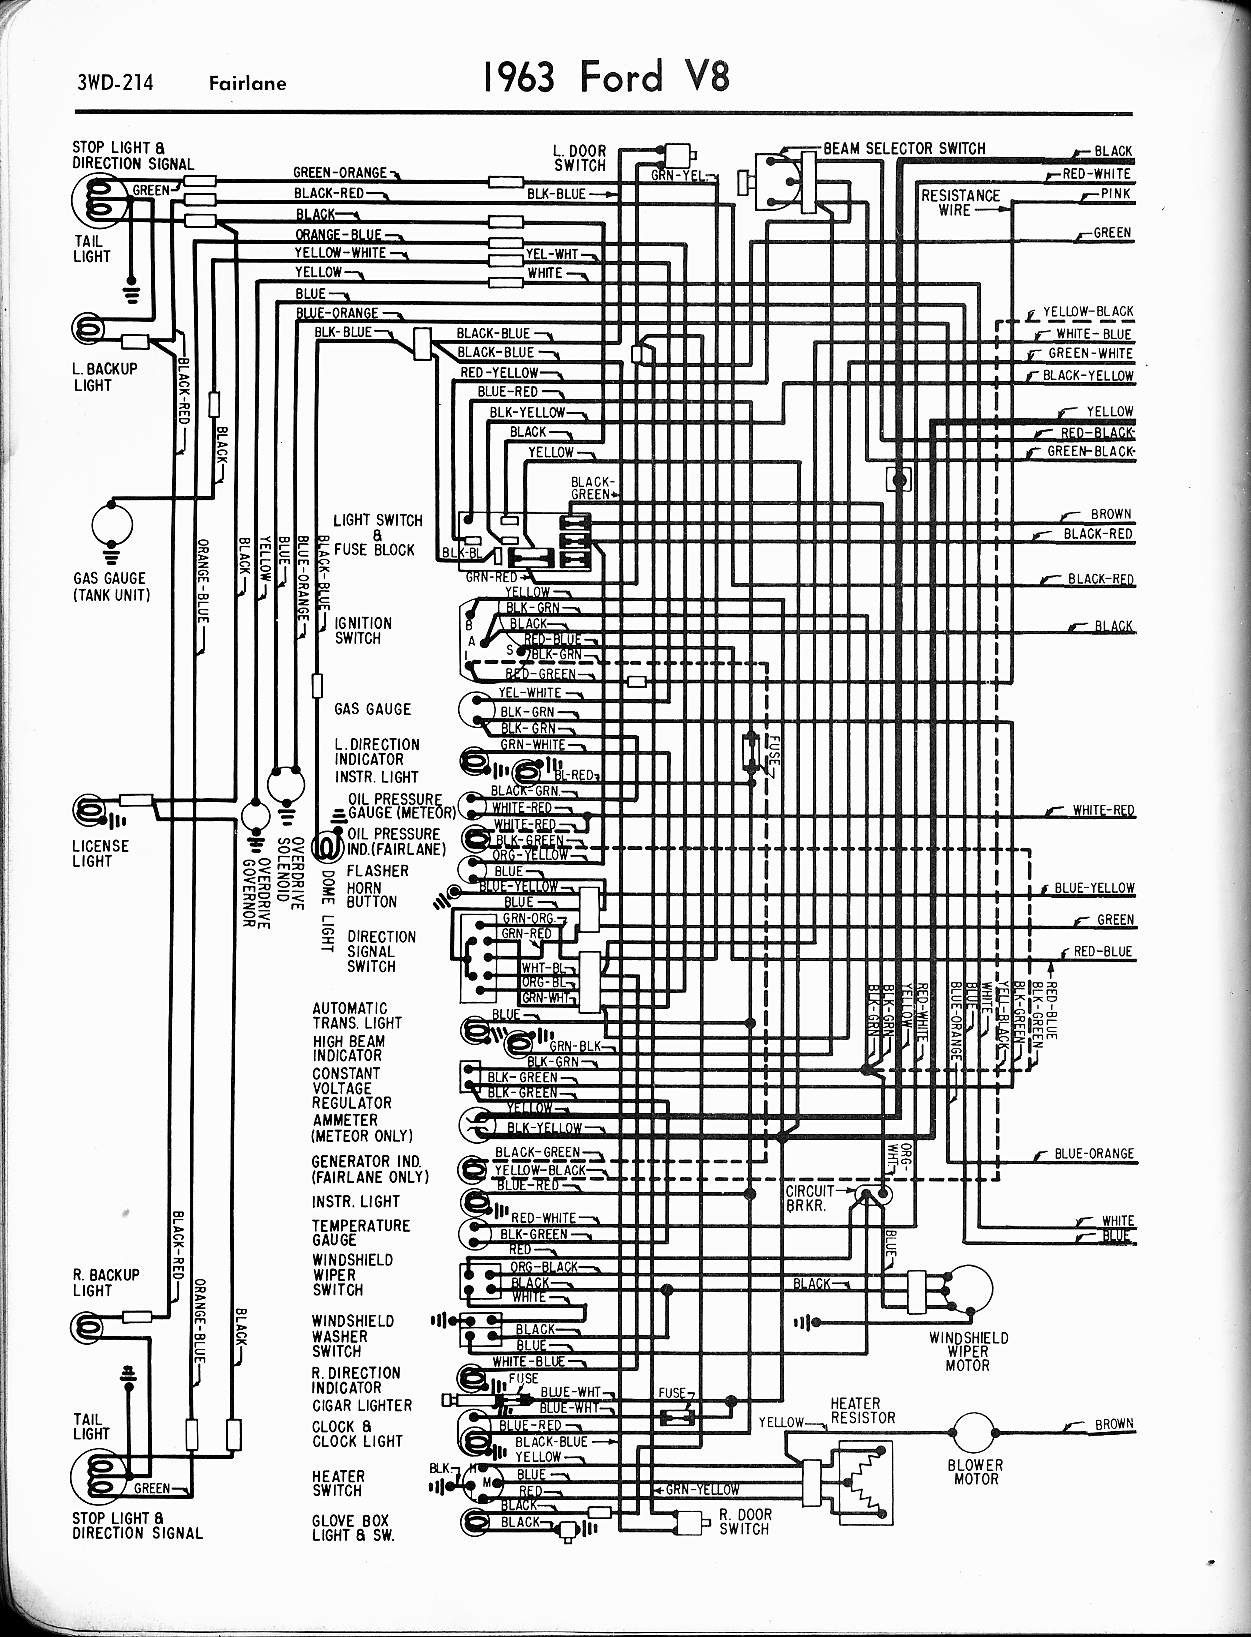 1956 Ford Mainline Wiring Diagram Blog 1968 F100 Pdf Fairlane Sunliner Opinions About Thunderbird